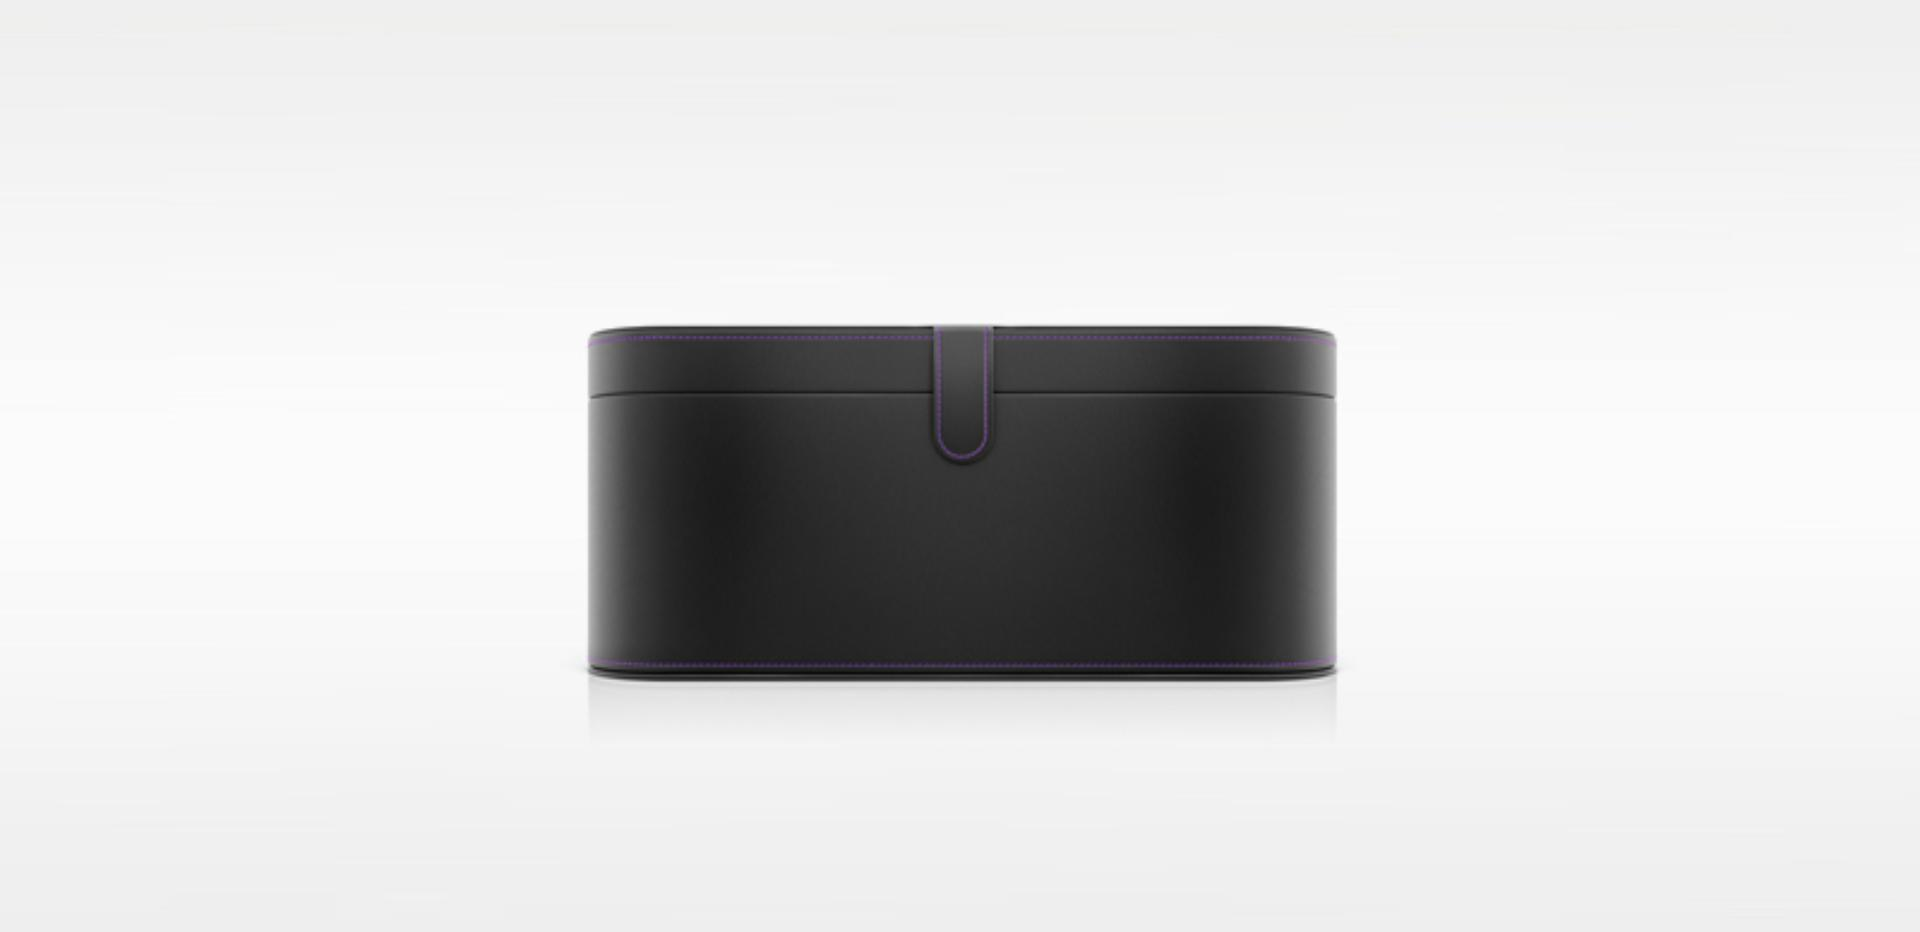 Black gift box for the Dyson Supersonic™